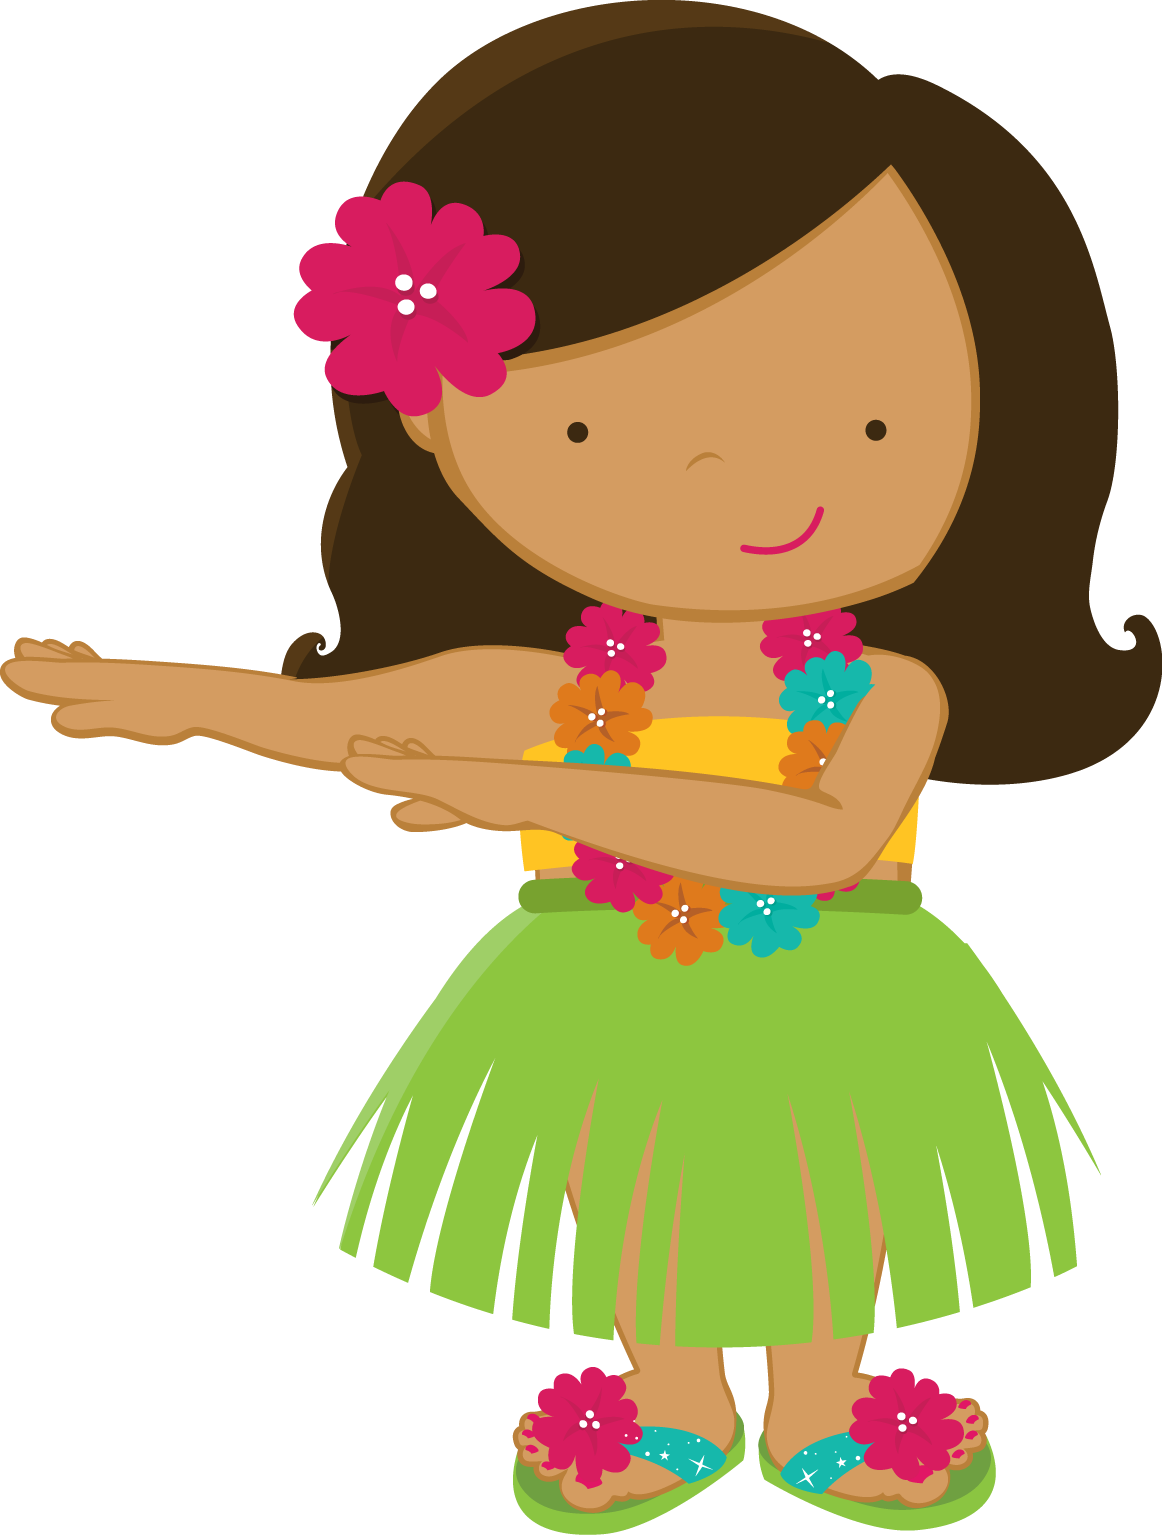 Zwd yellow hula girl. Hibiscus clipart hawaiian outfit